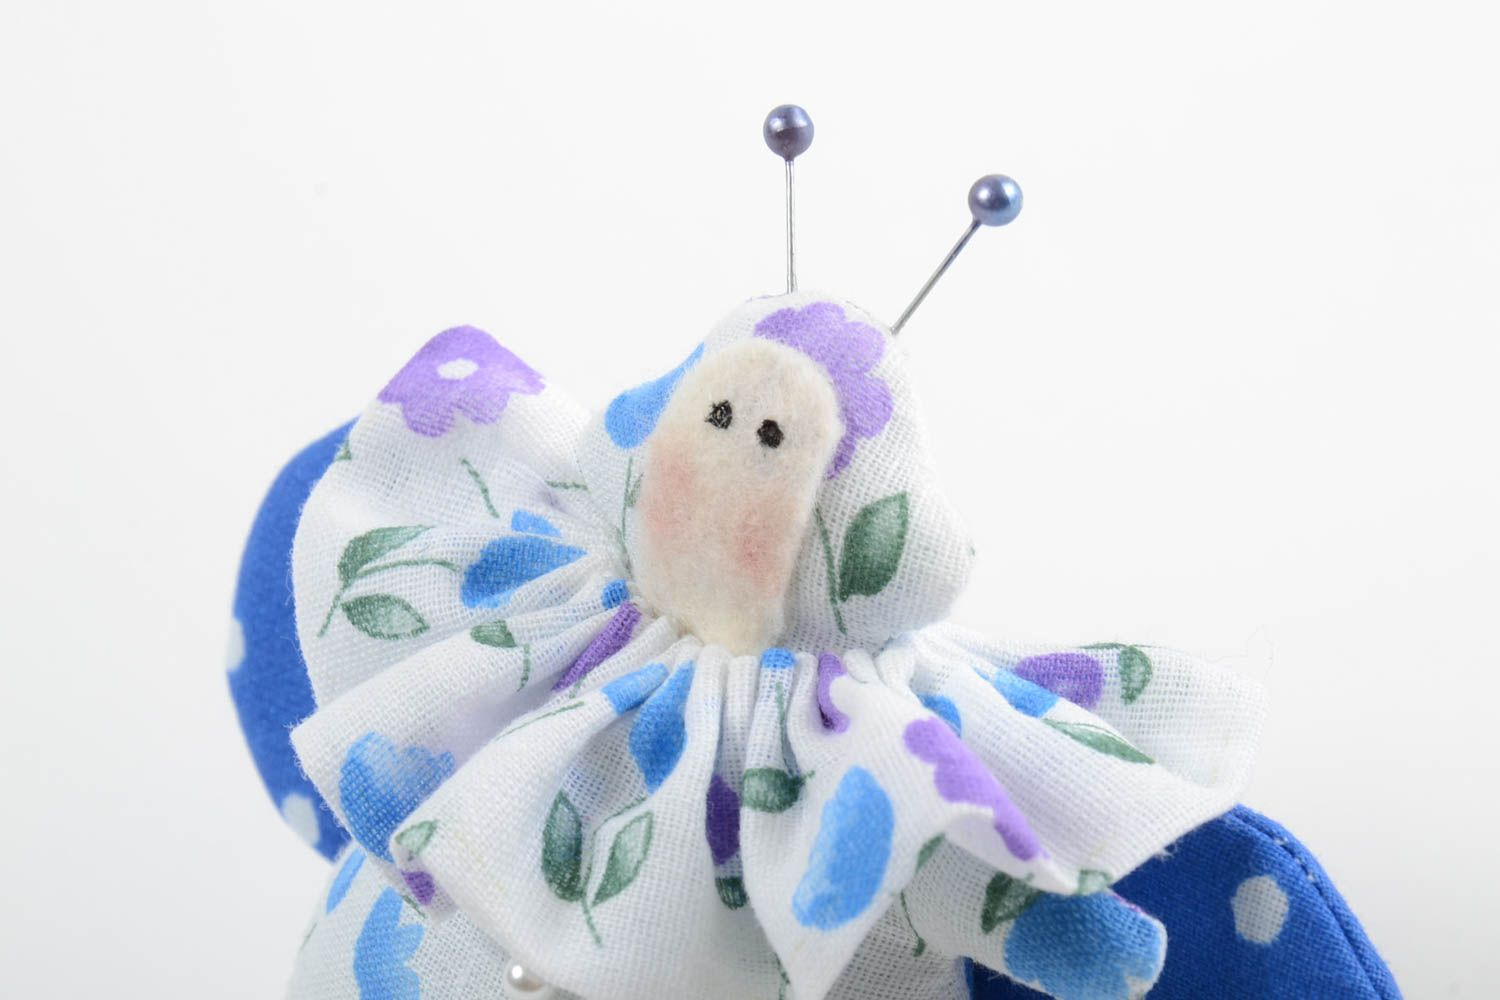 Beautiful homemade fabric toy stuffed soft toy collectible rag doll gift ideas photo 5